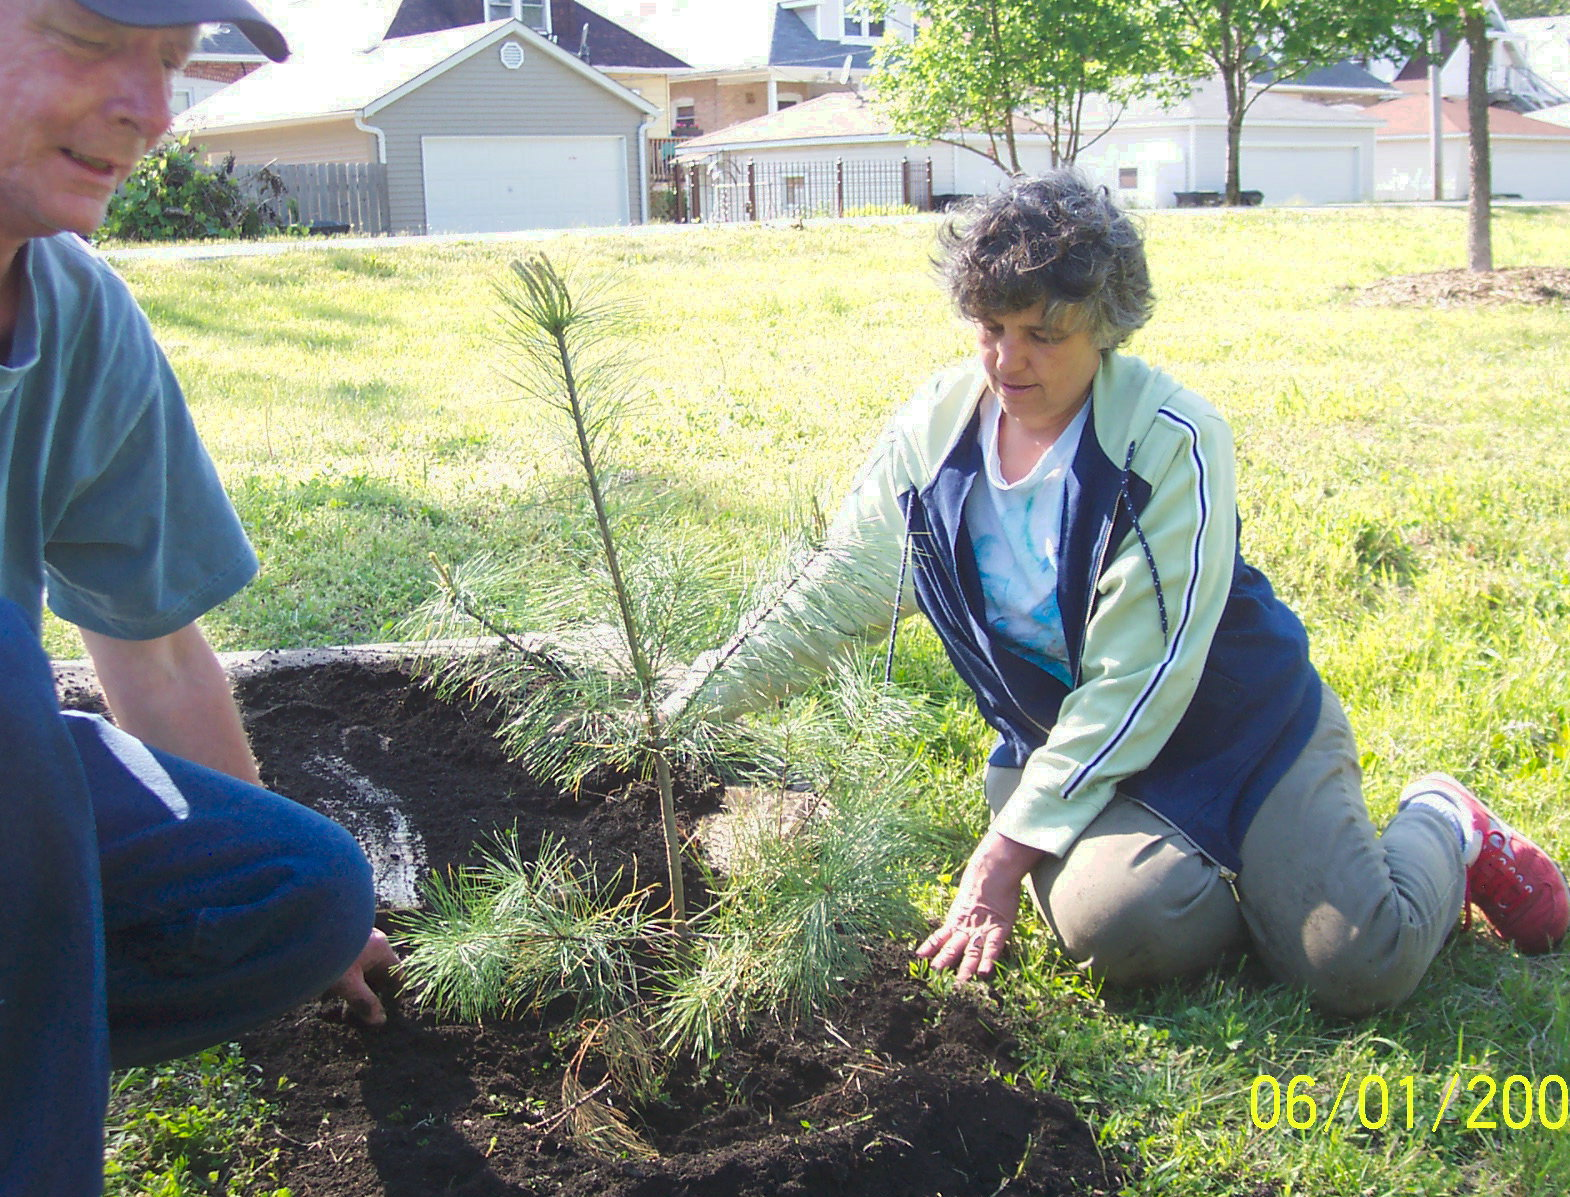 Planting Seedlings with Trees R Beautiful on Burnham Greenway